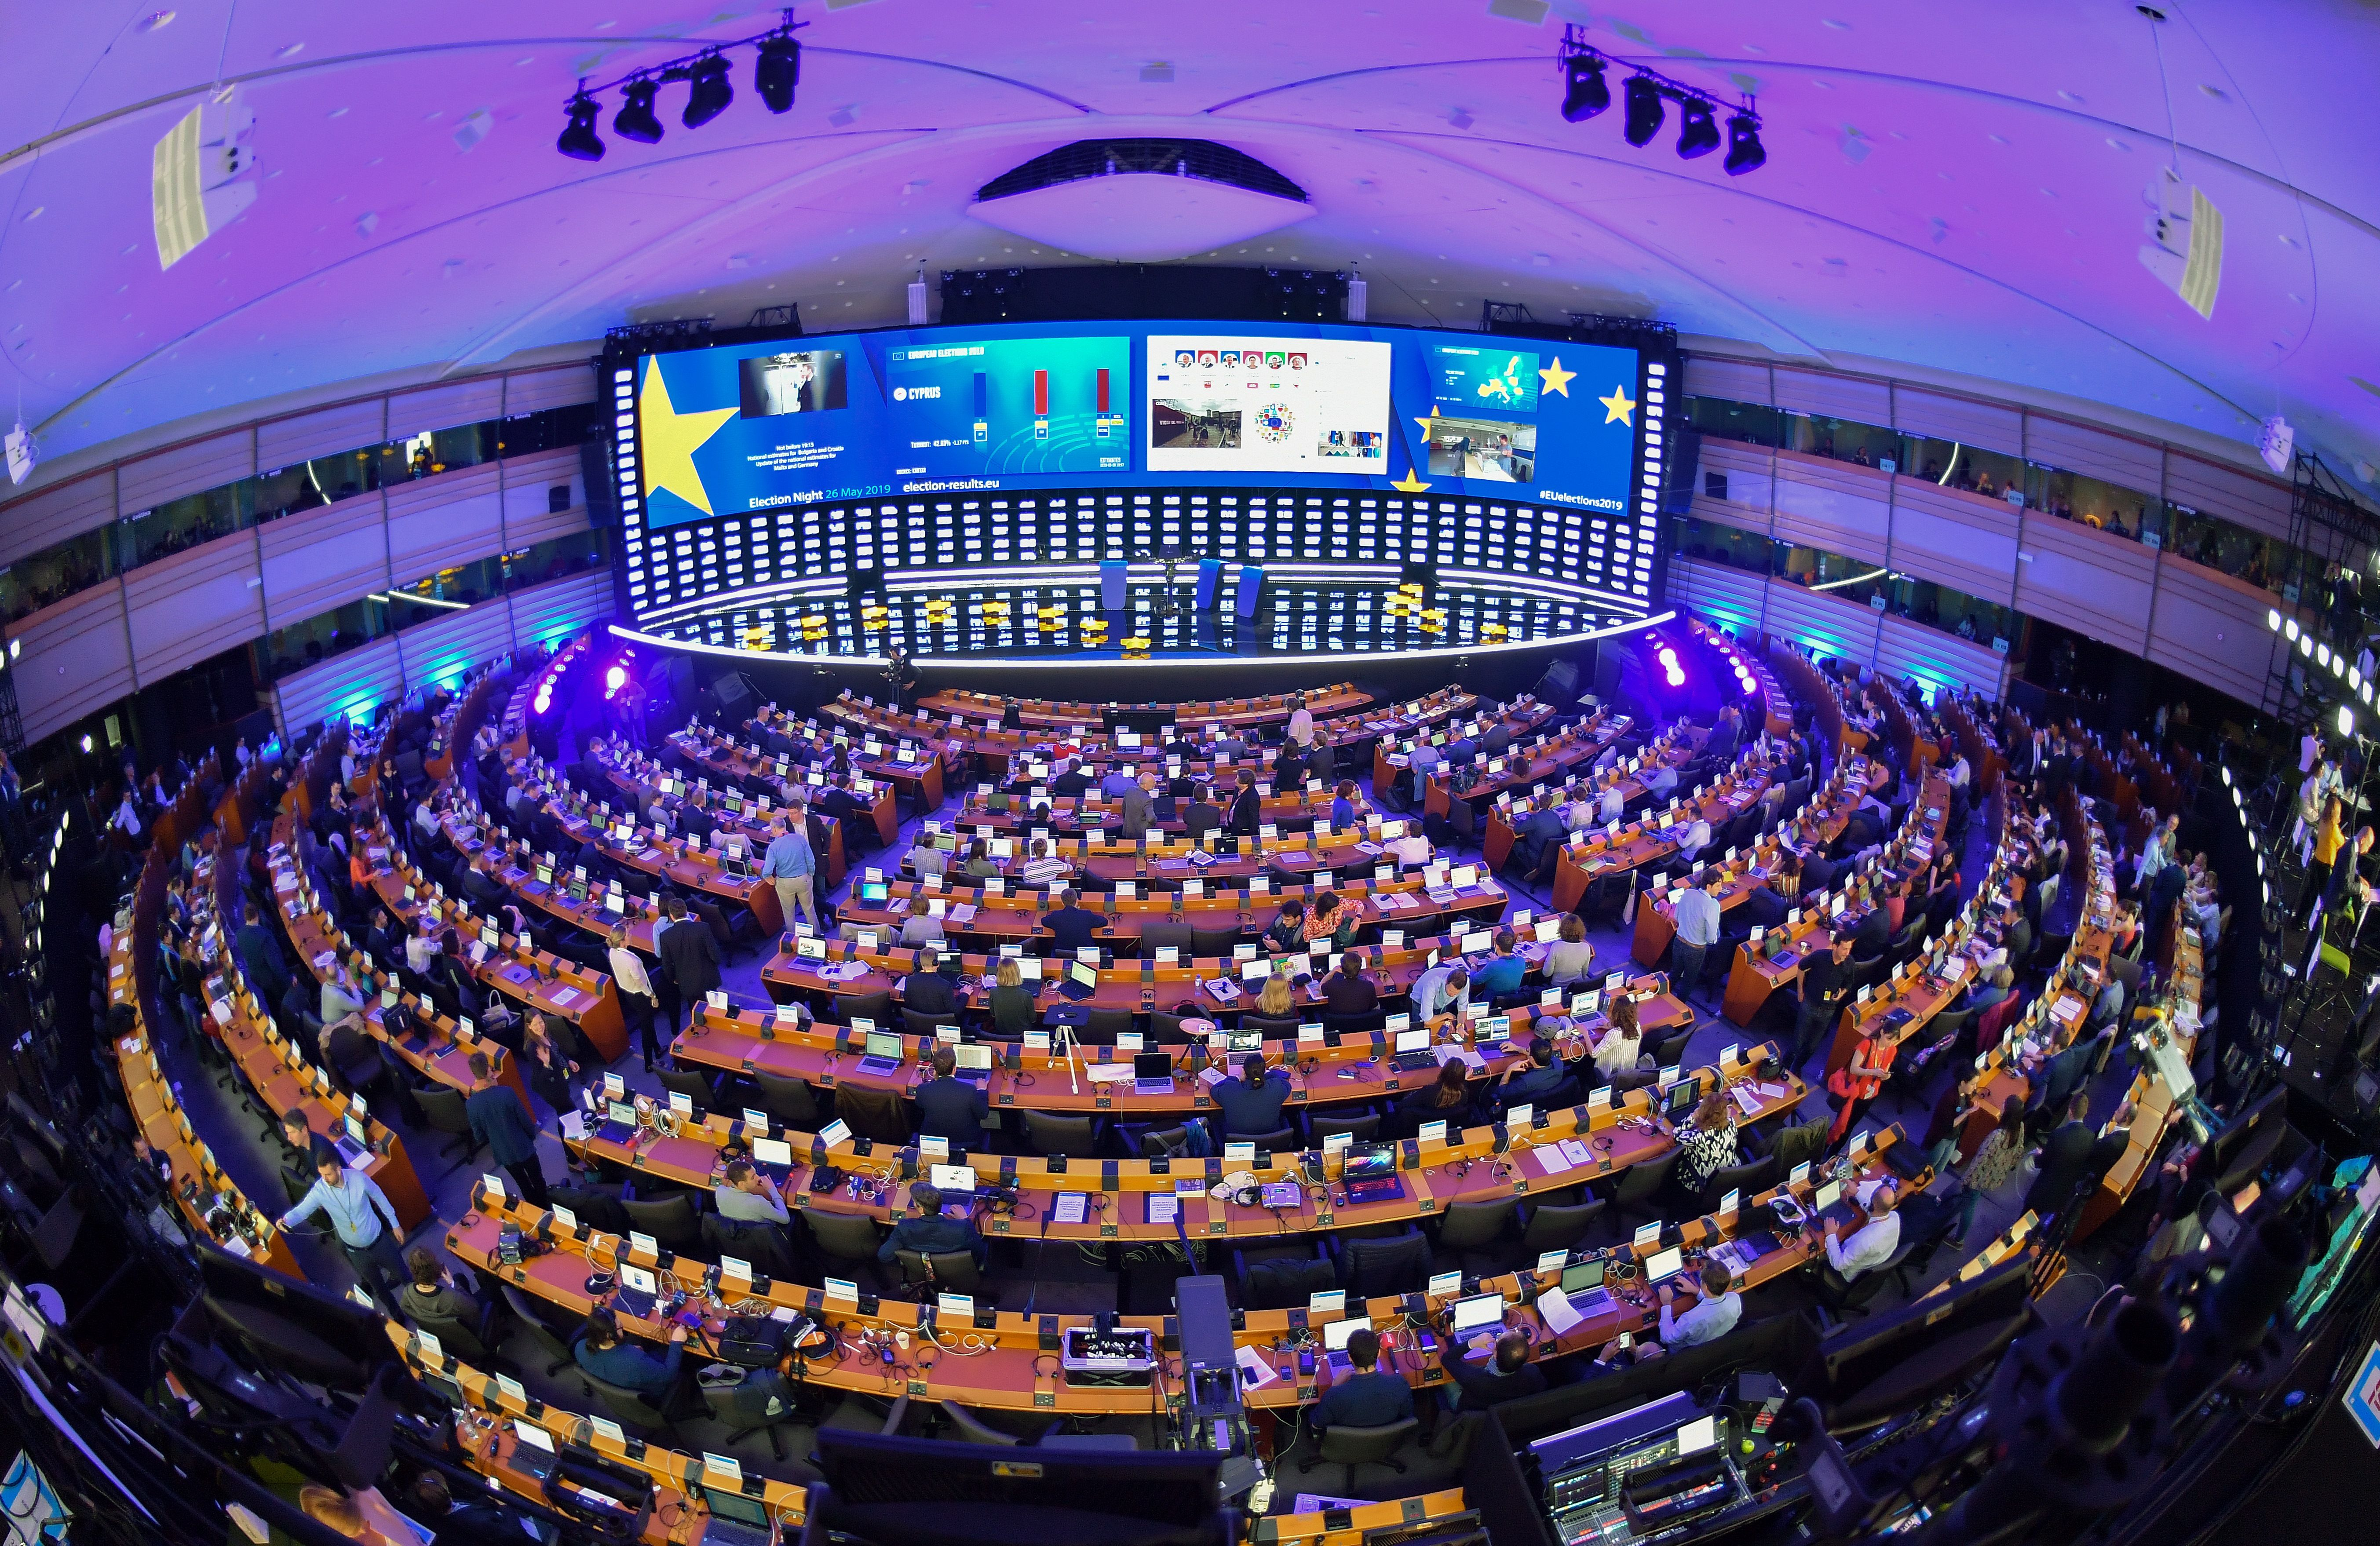 A view of the inside of the European Parliament hemicycle where journalists are attending the European elections results in the European Parliament in Brussels.